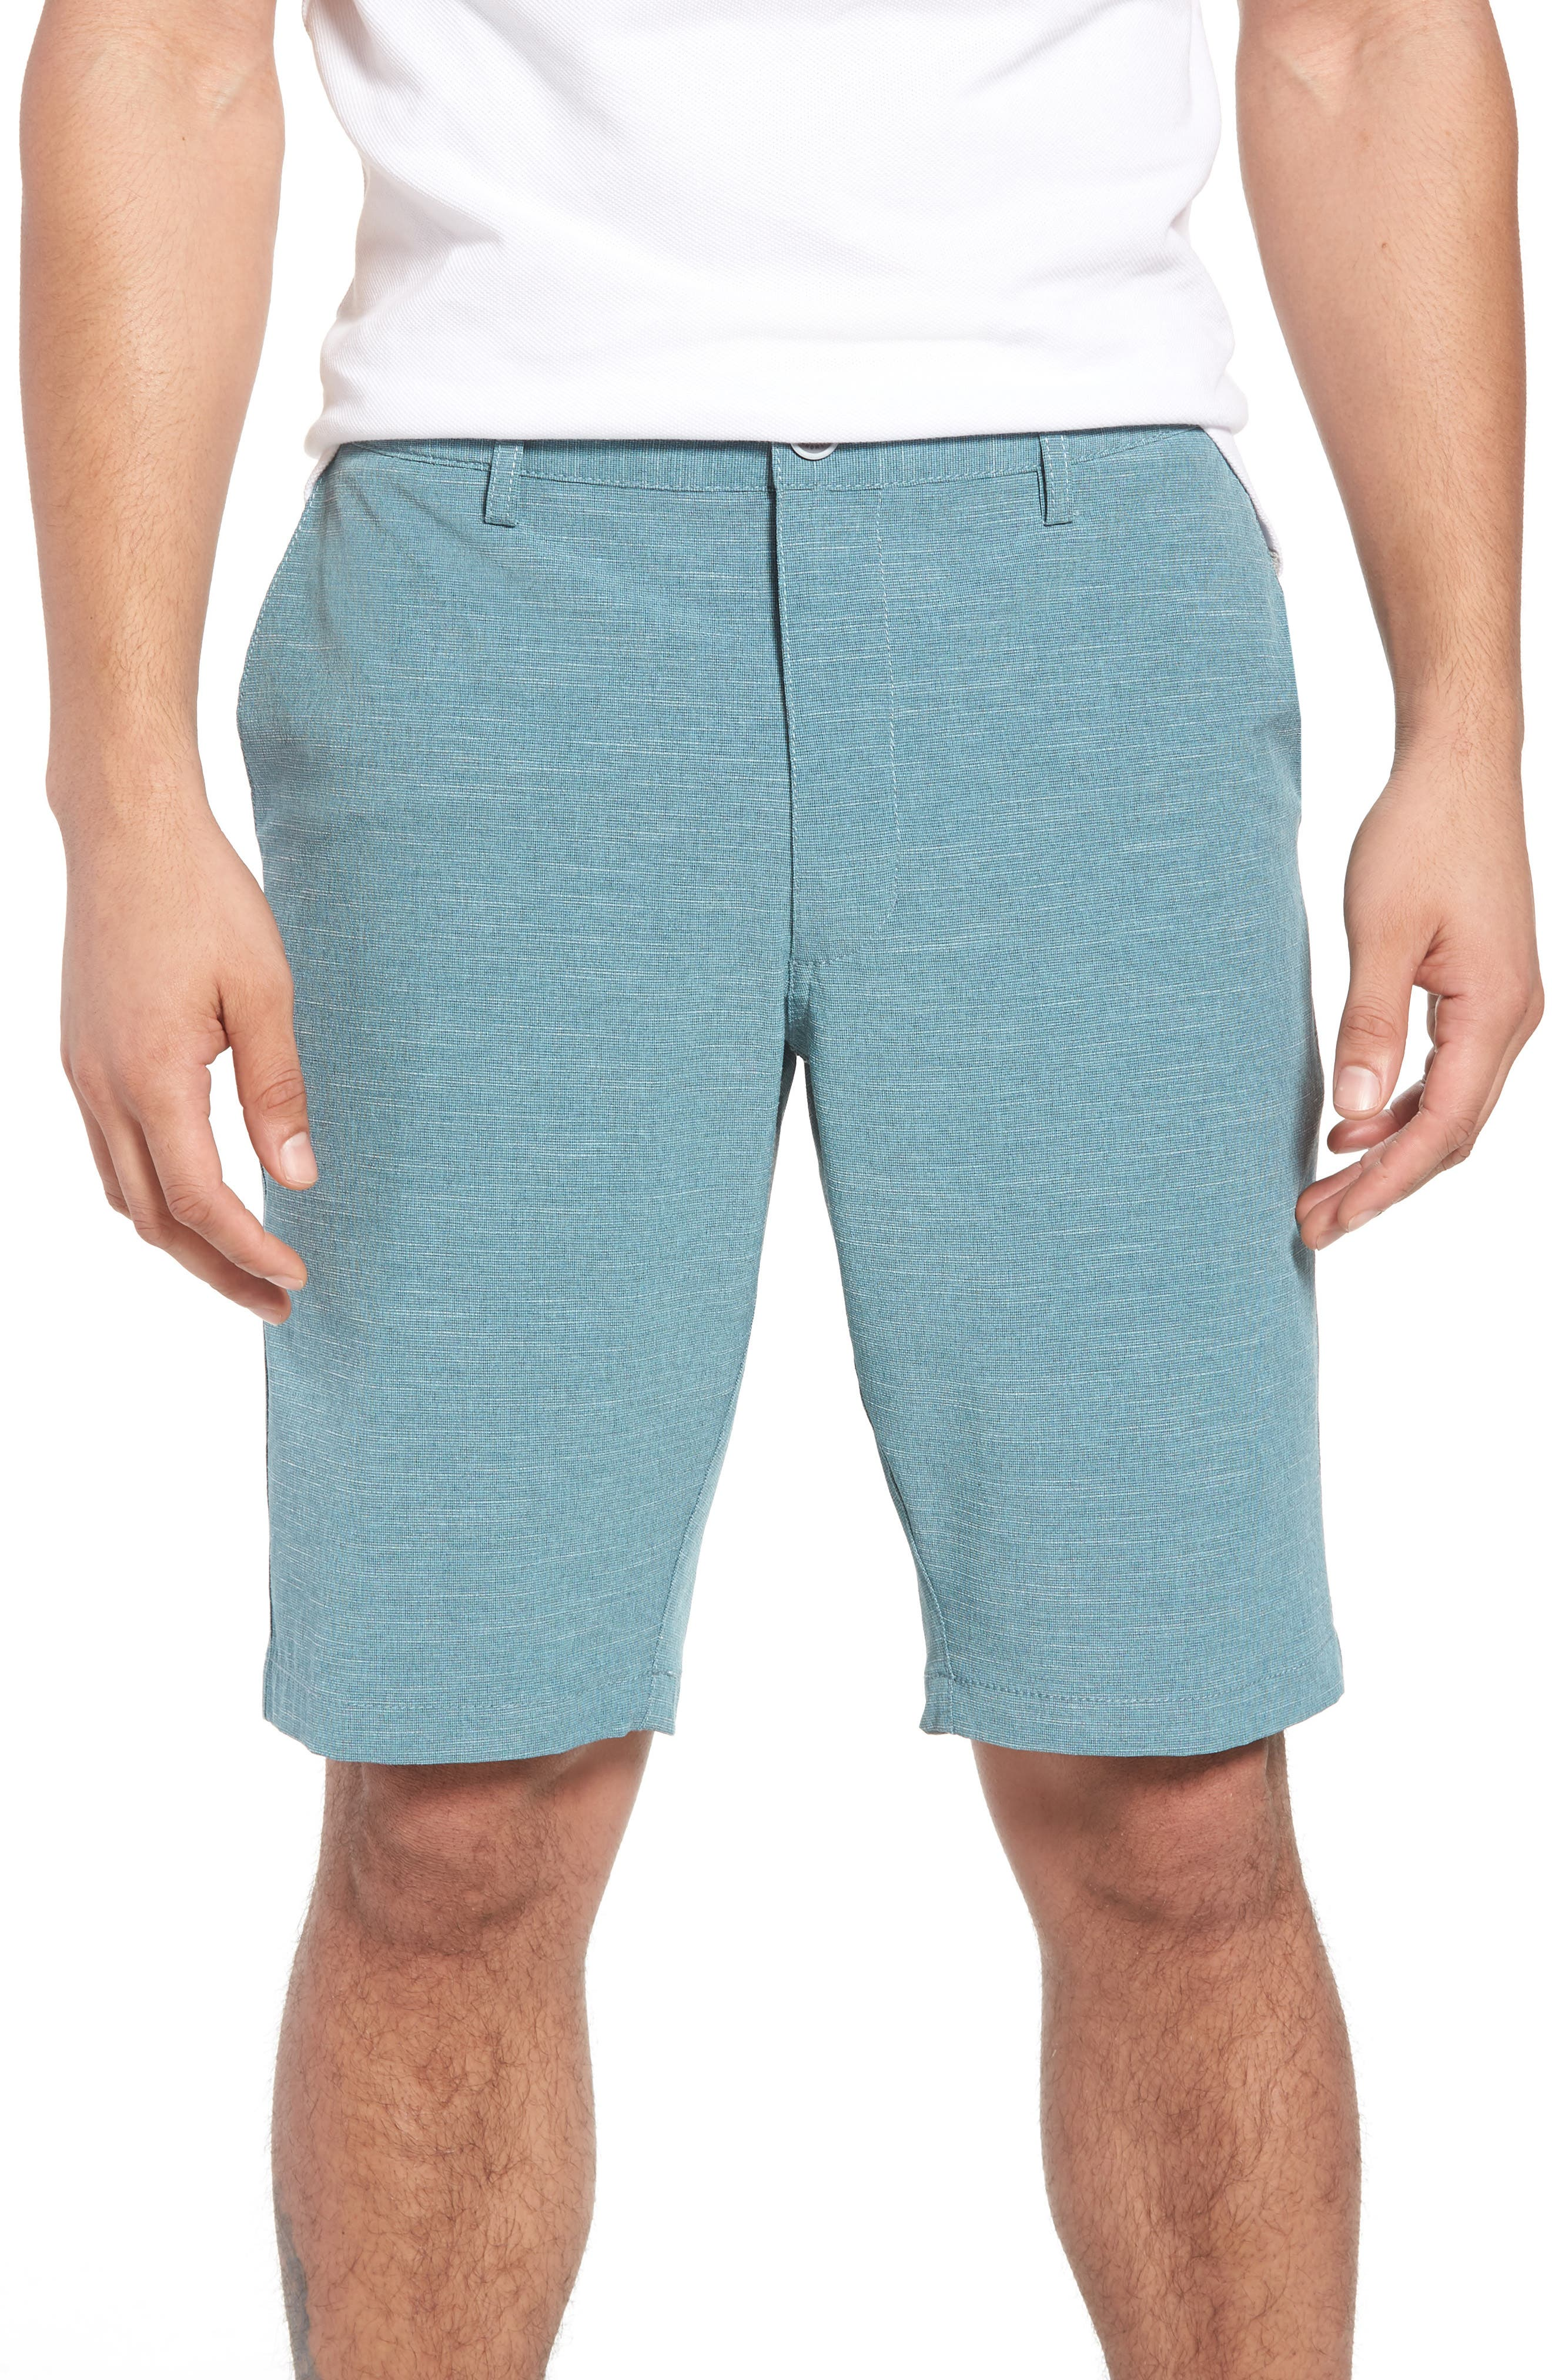 Existence Stretch Shorts,                             Main thumbnail 2, color,